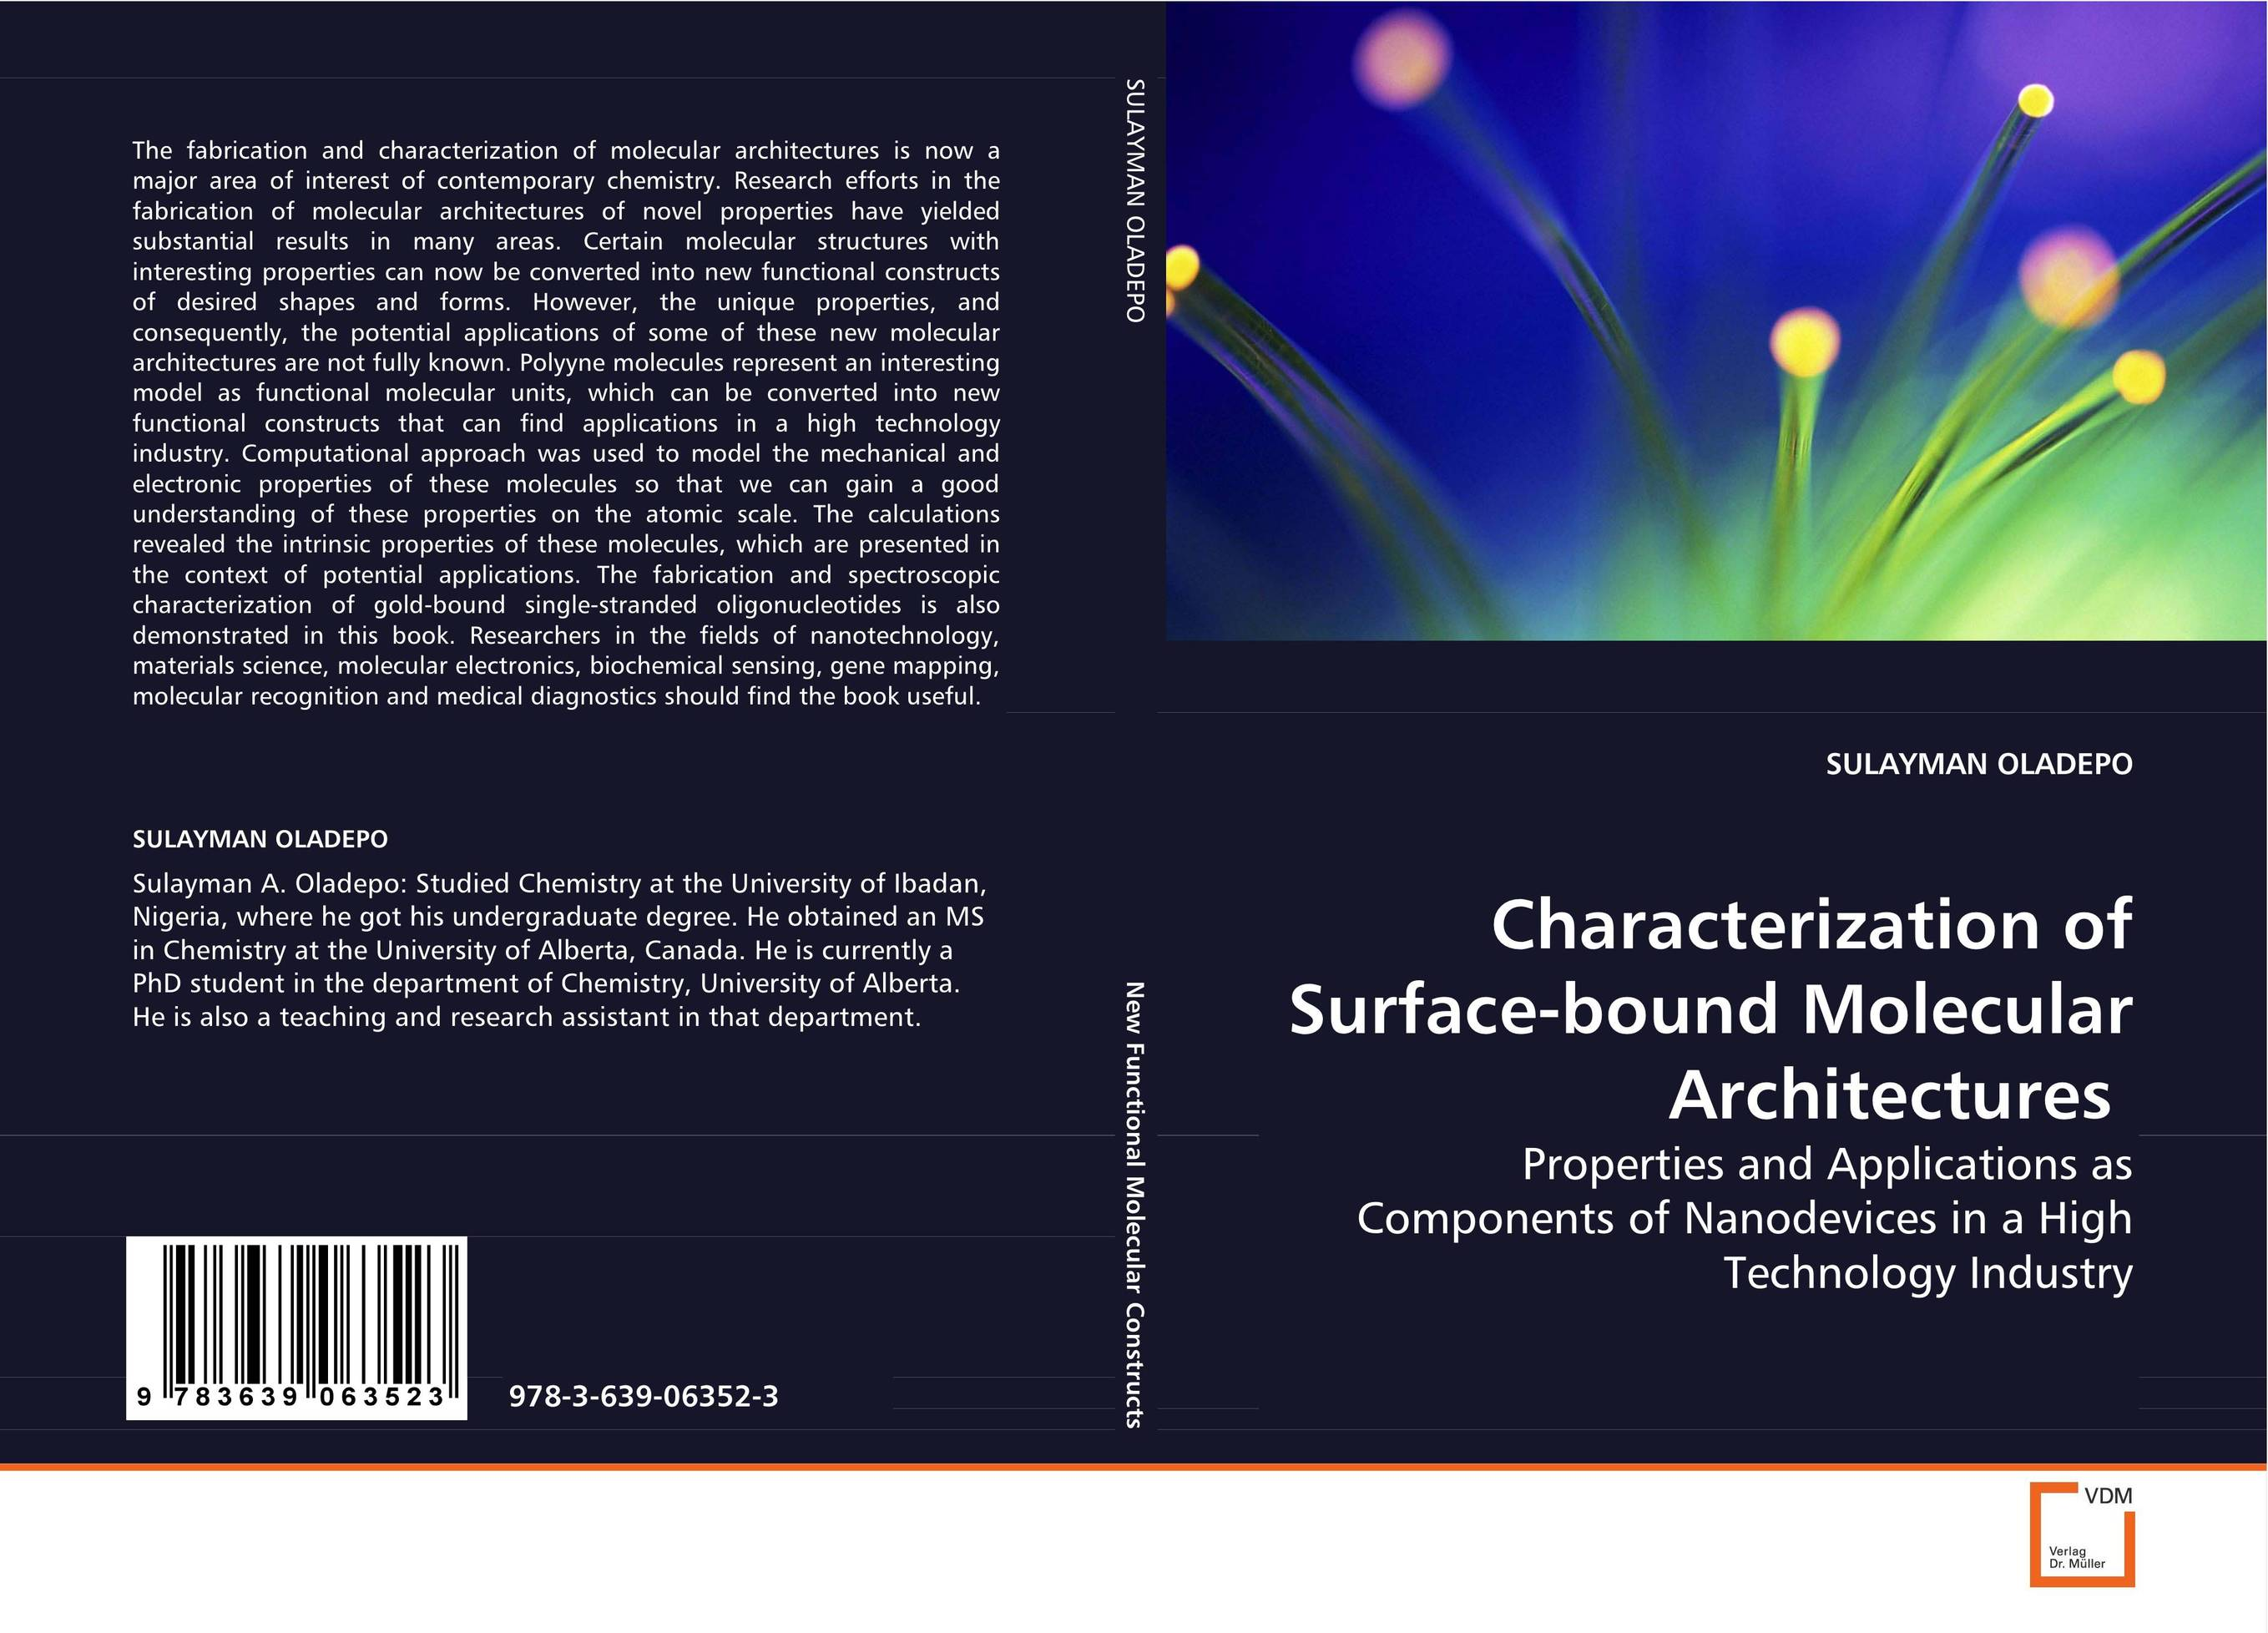 Characterization of Surface-bound MolecularArchitectures vishal r patil and j g talati wheat molecular and biochemical characterization